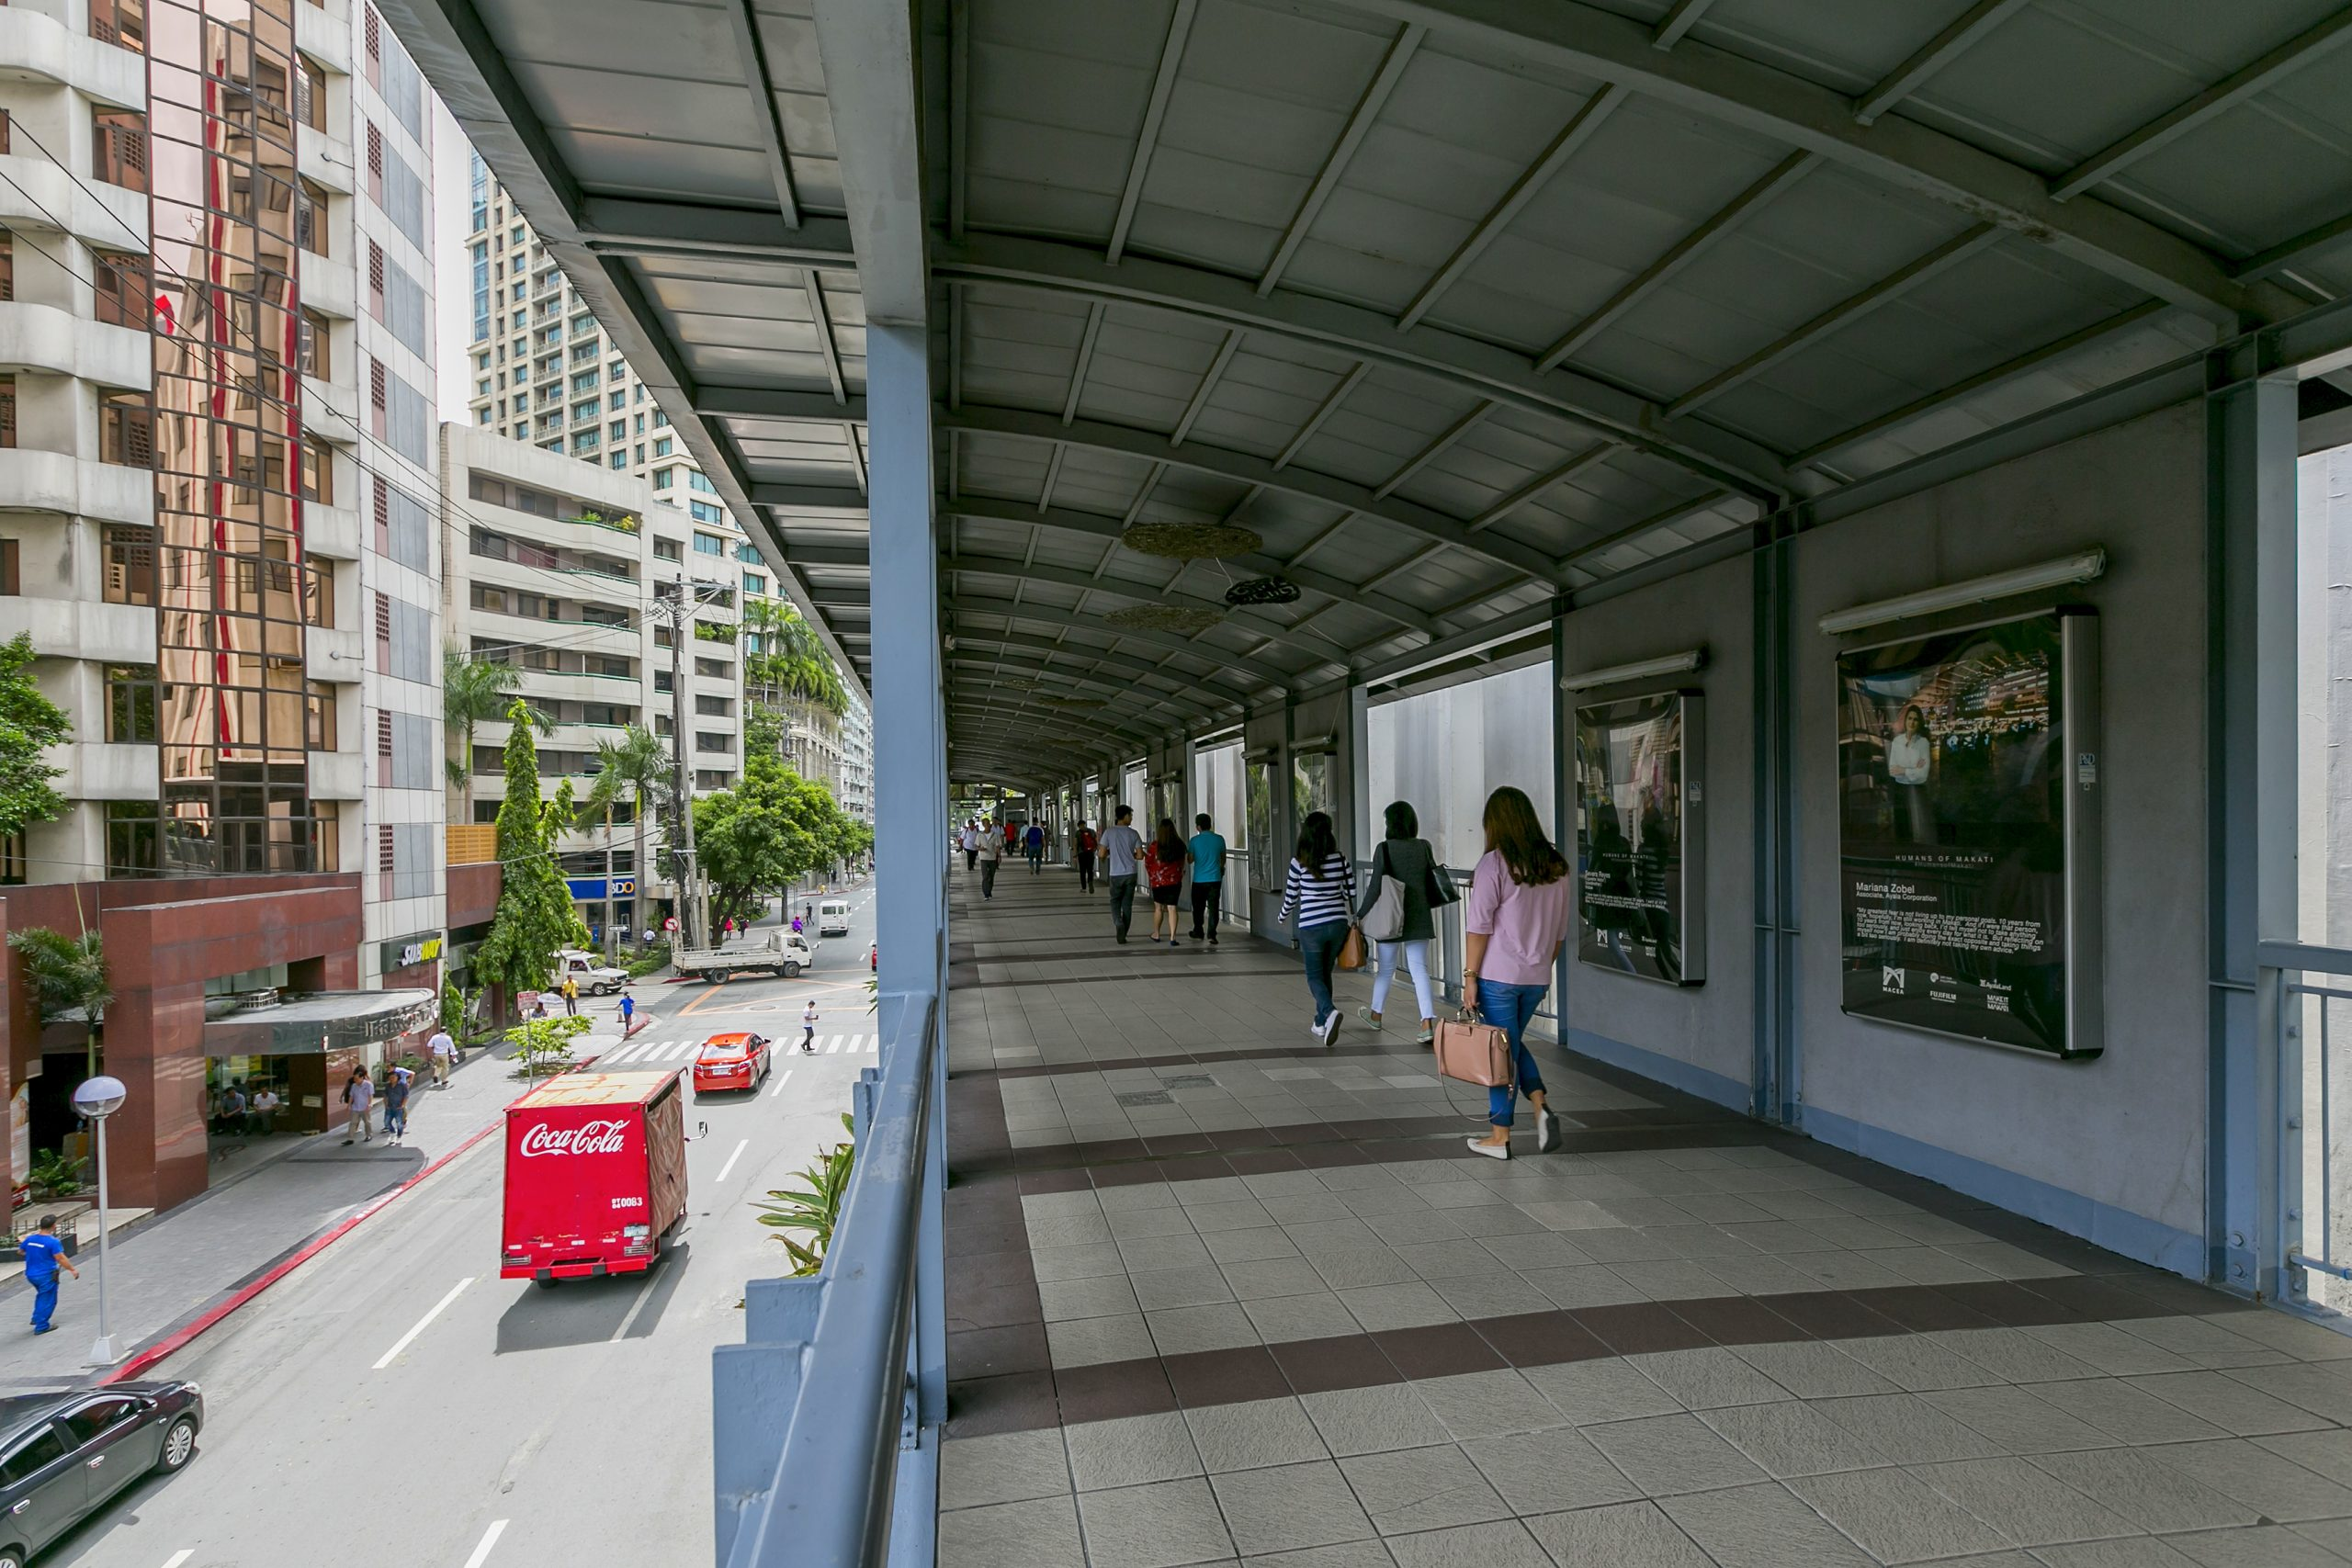 The city's network of elevated walkways is a proud testament to Makati's long-standing commitment to walkablity and accessibility. From the Dela Rosa Elevated Walkway (acclaimed as the country's longest) to its myriad footbridges, everywhere in the city is within walking distance.  Safe, clean, and well-lit pathways ensure pedestrians that they are protected from the elements and have quick access to their destinations.